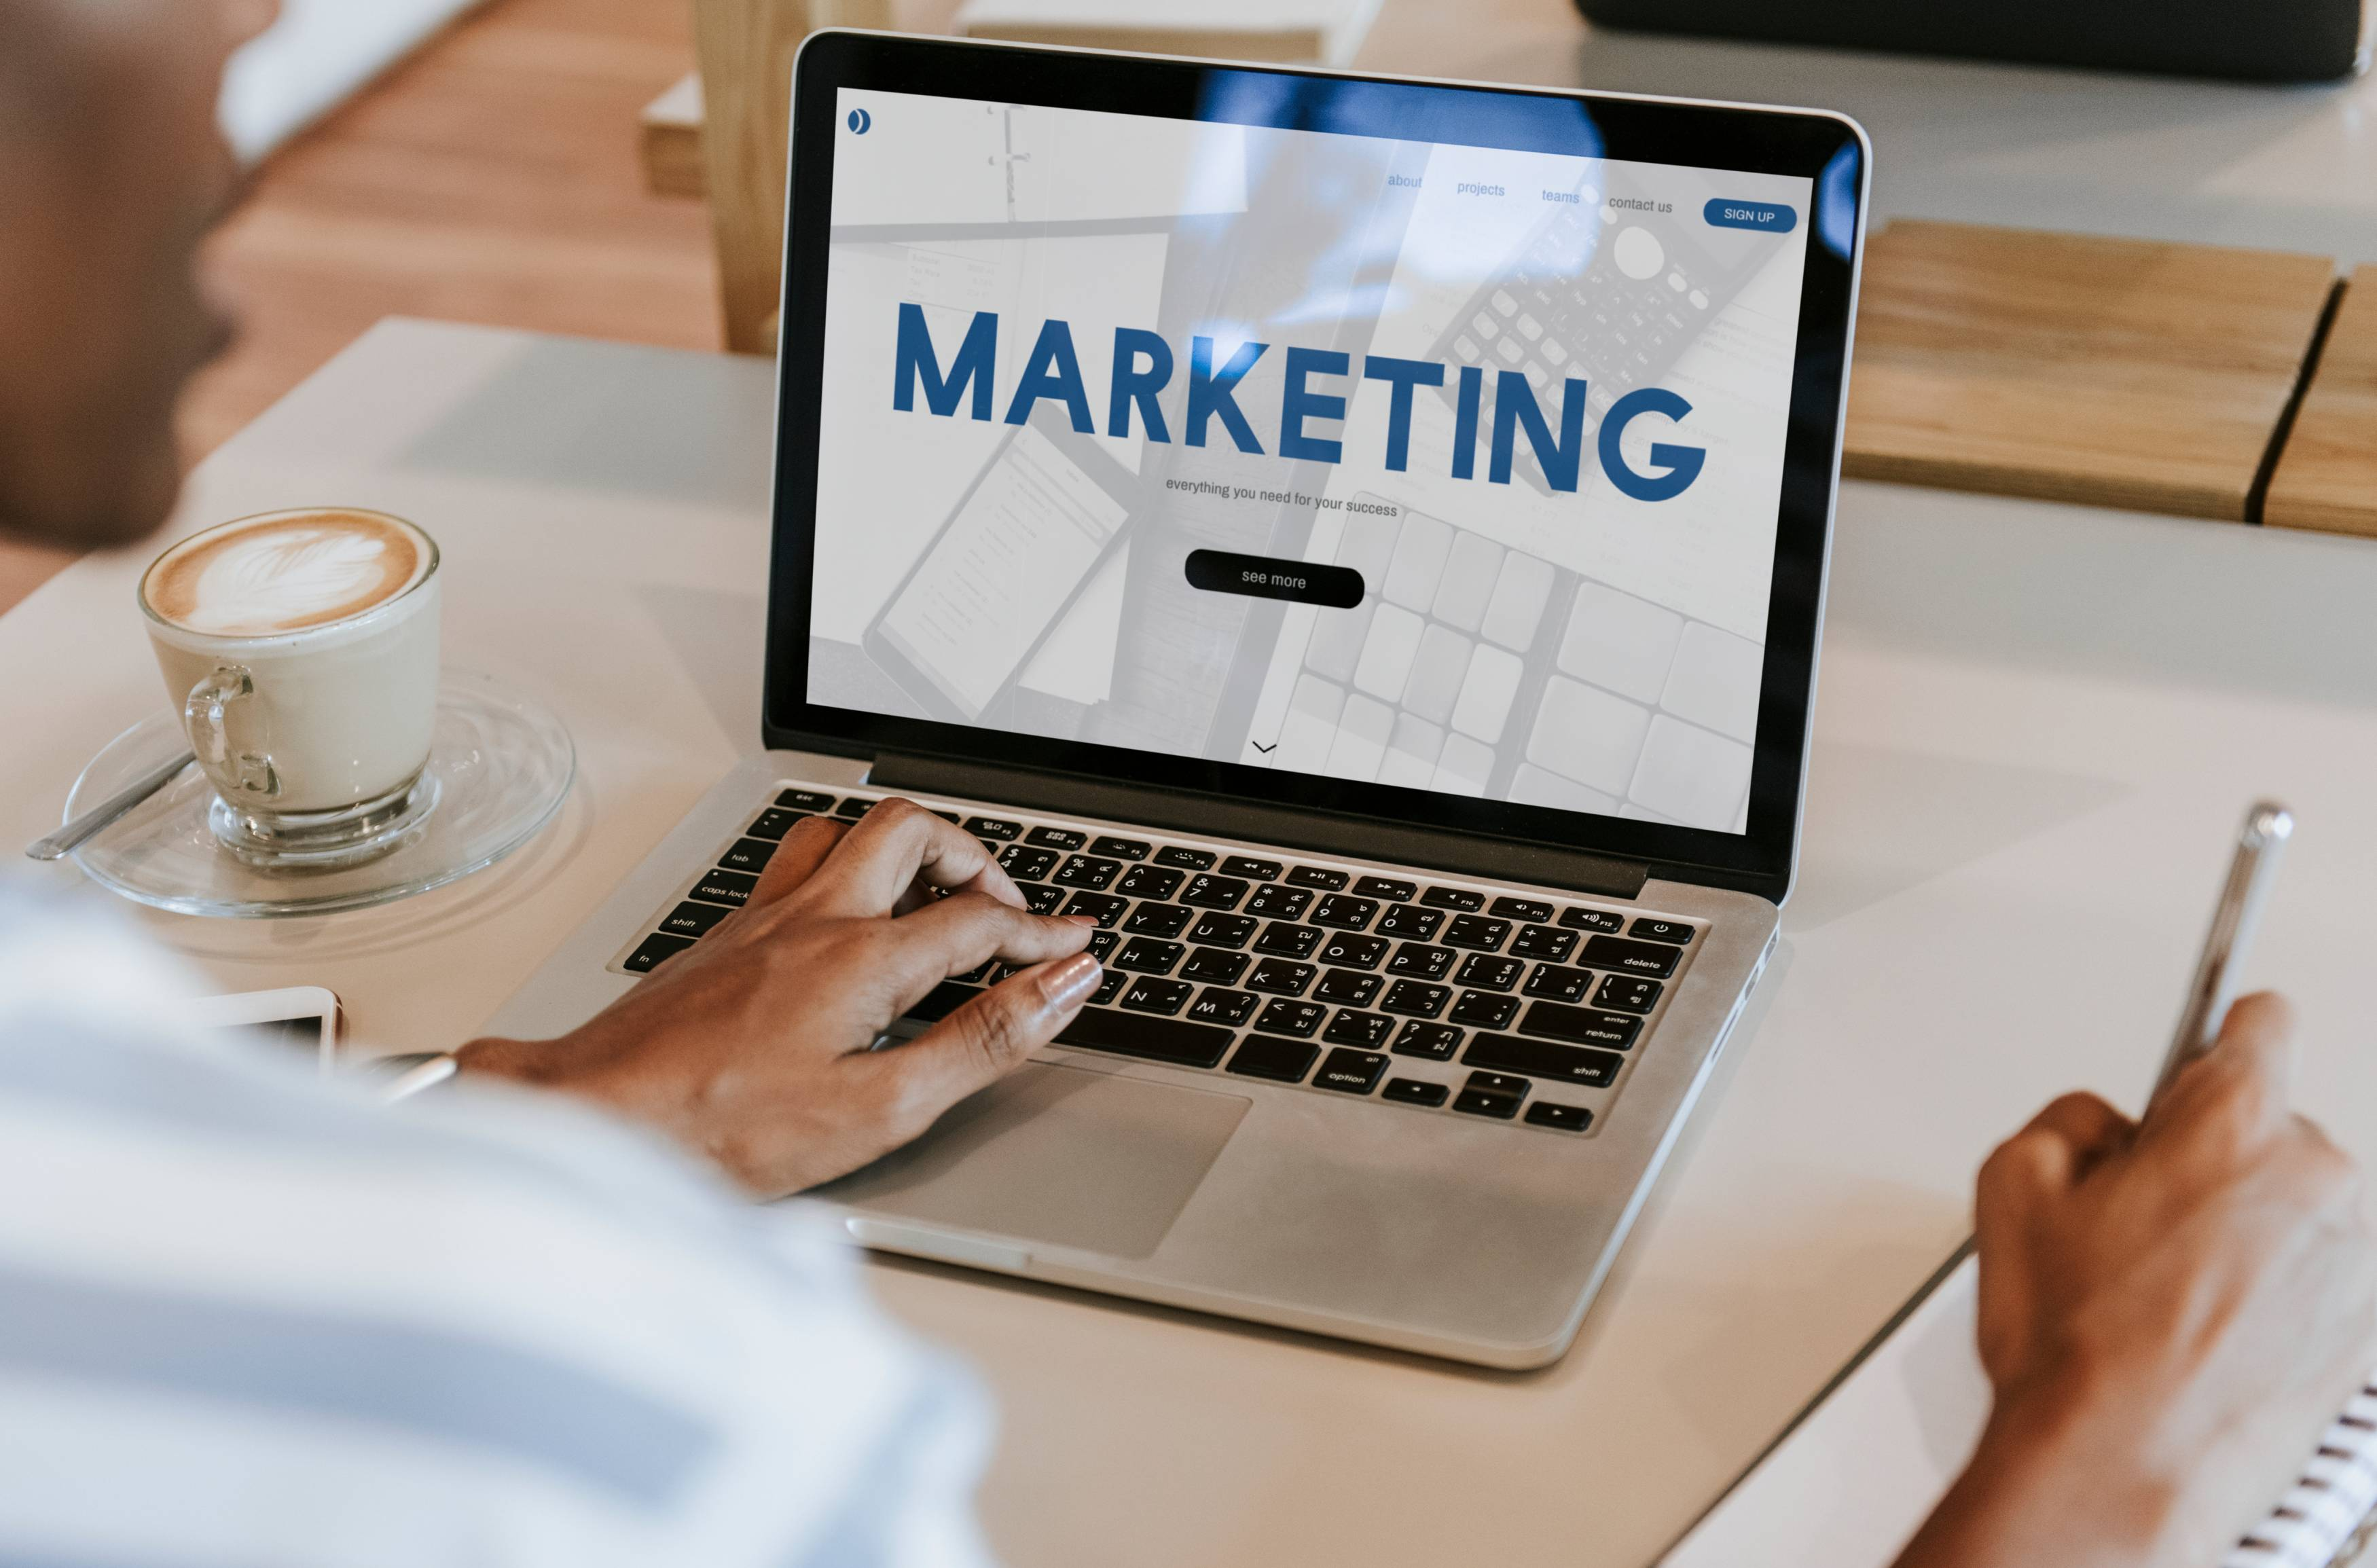 Search Engine Marketing Services, SEM Services In India, Search Engine Marketing Company in India, Search Engine Marketing Company